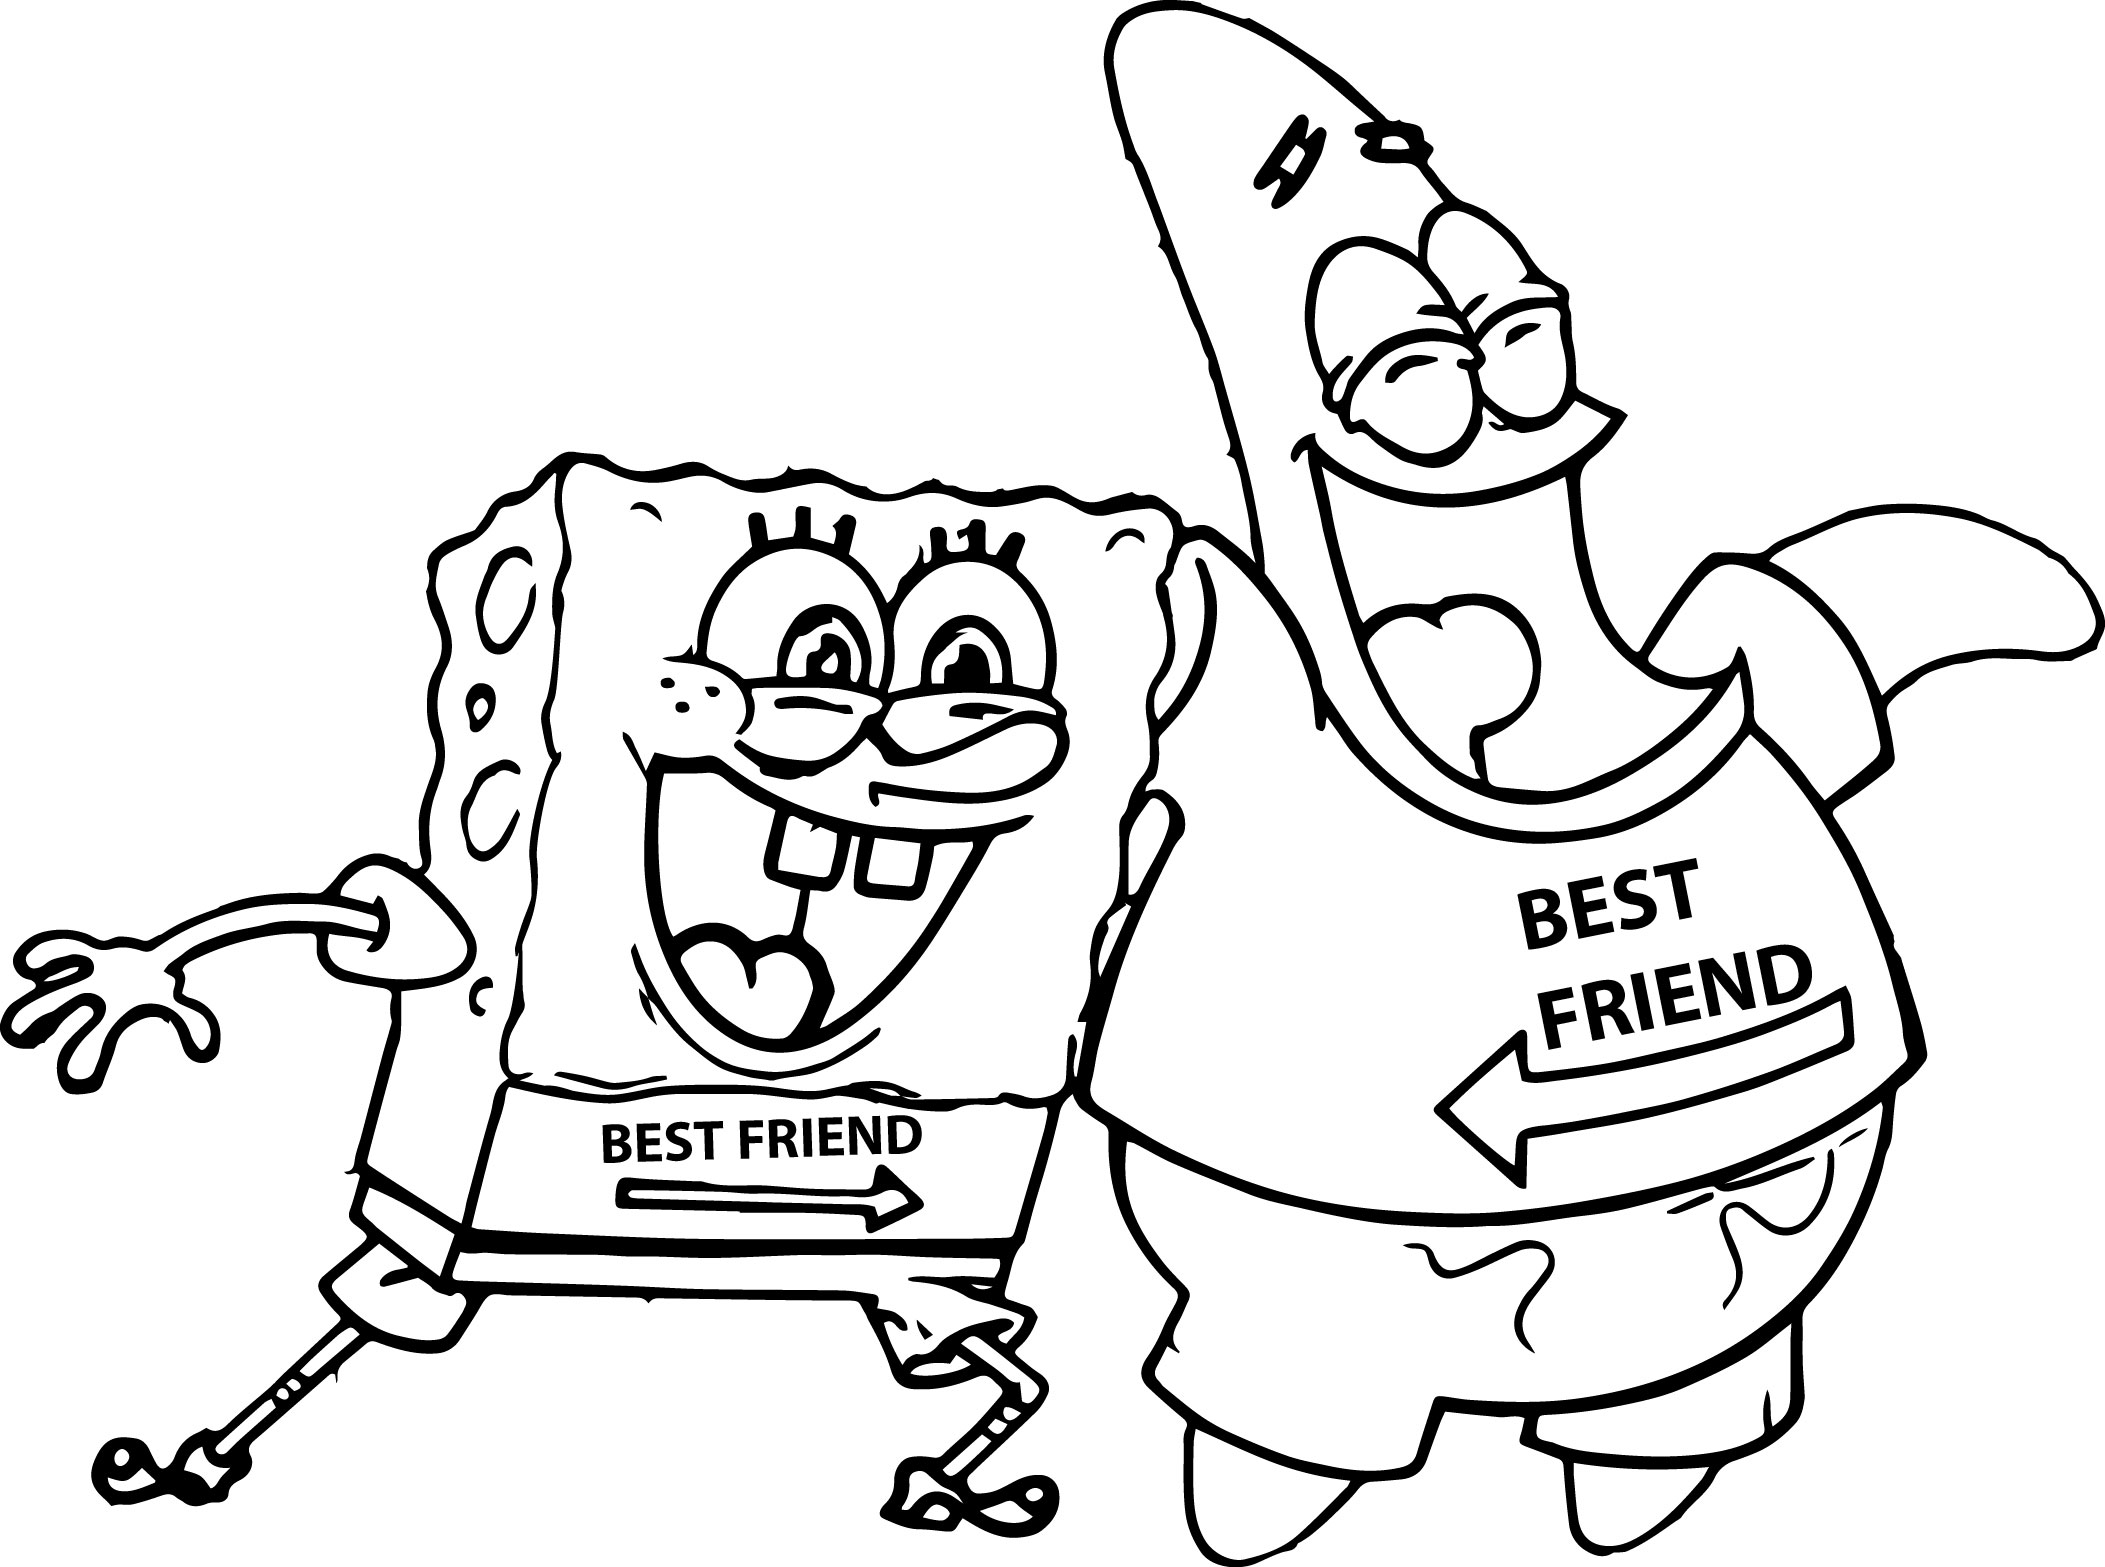 2105x1567 Best Friend Coloring Pages To Download And Print For Free